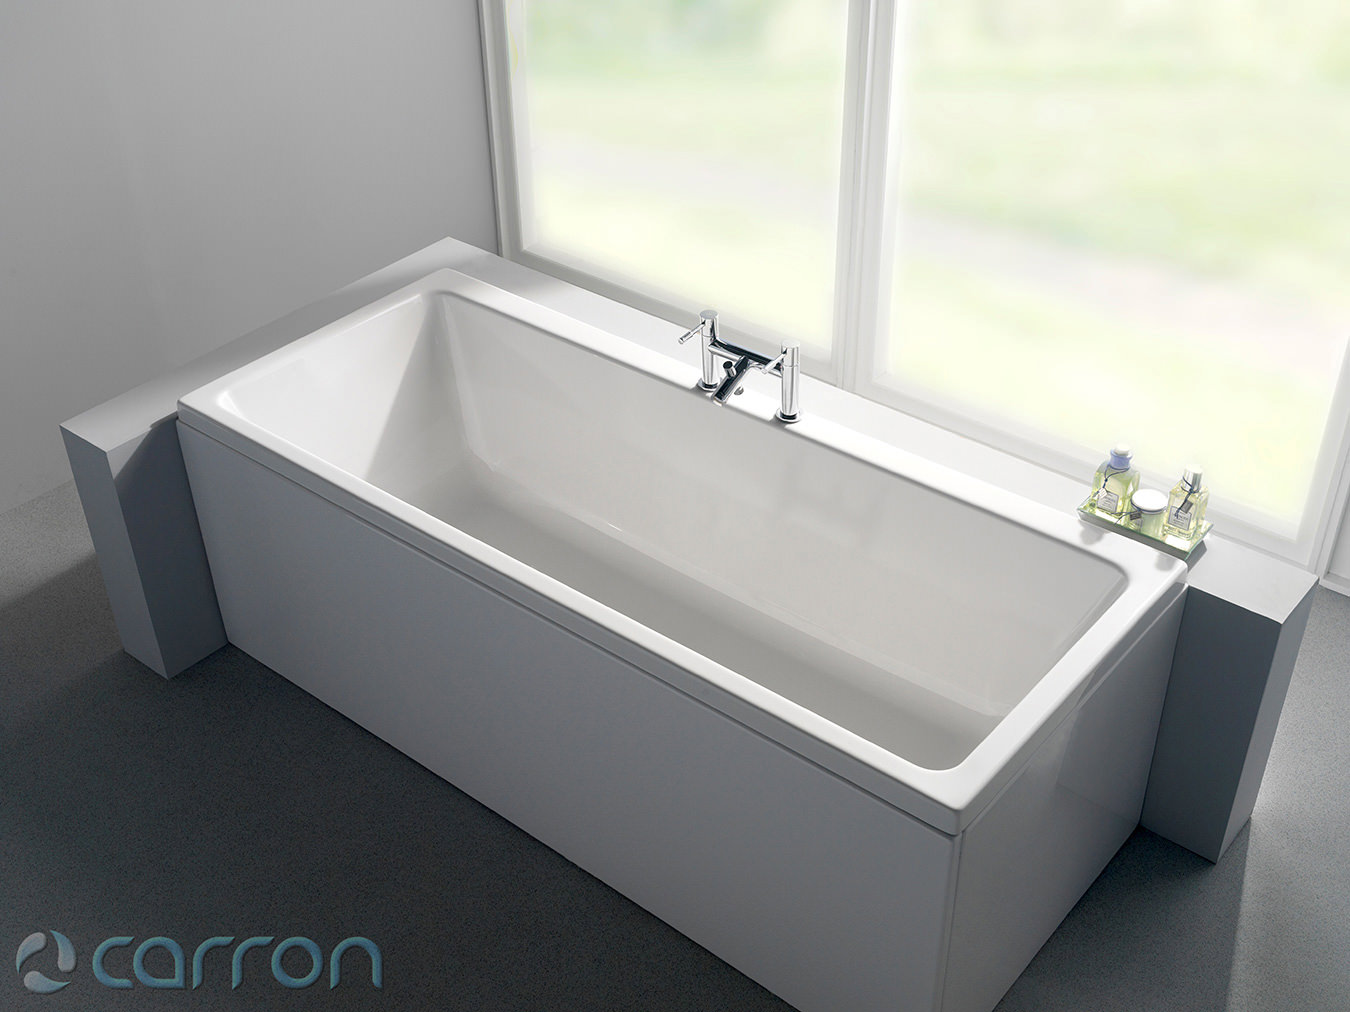 Carron Quantum Double Ended Acrylic Bath 1800 X 800mm Q4